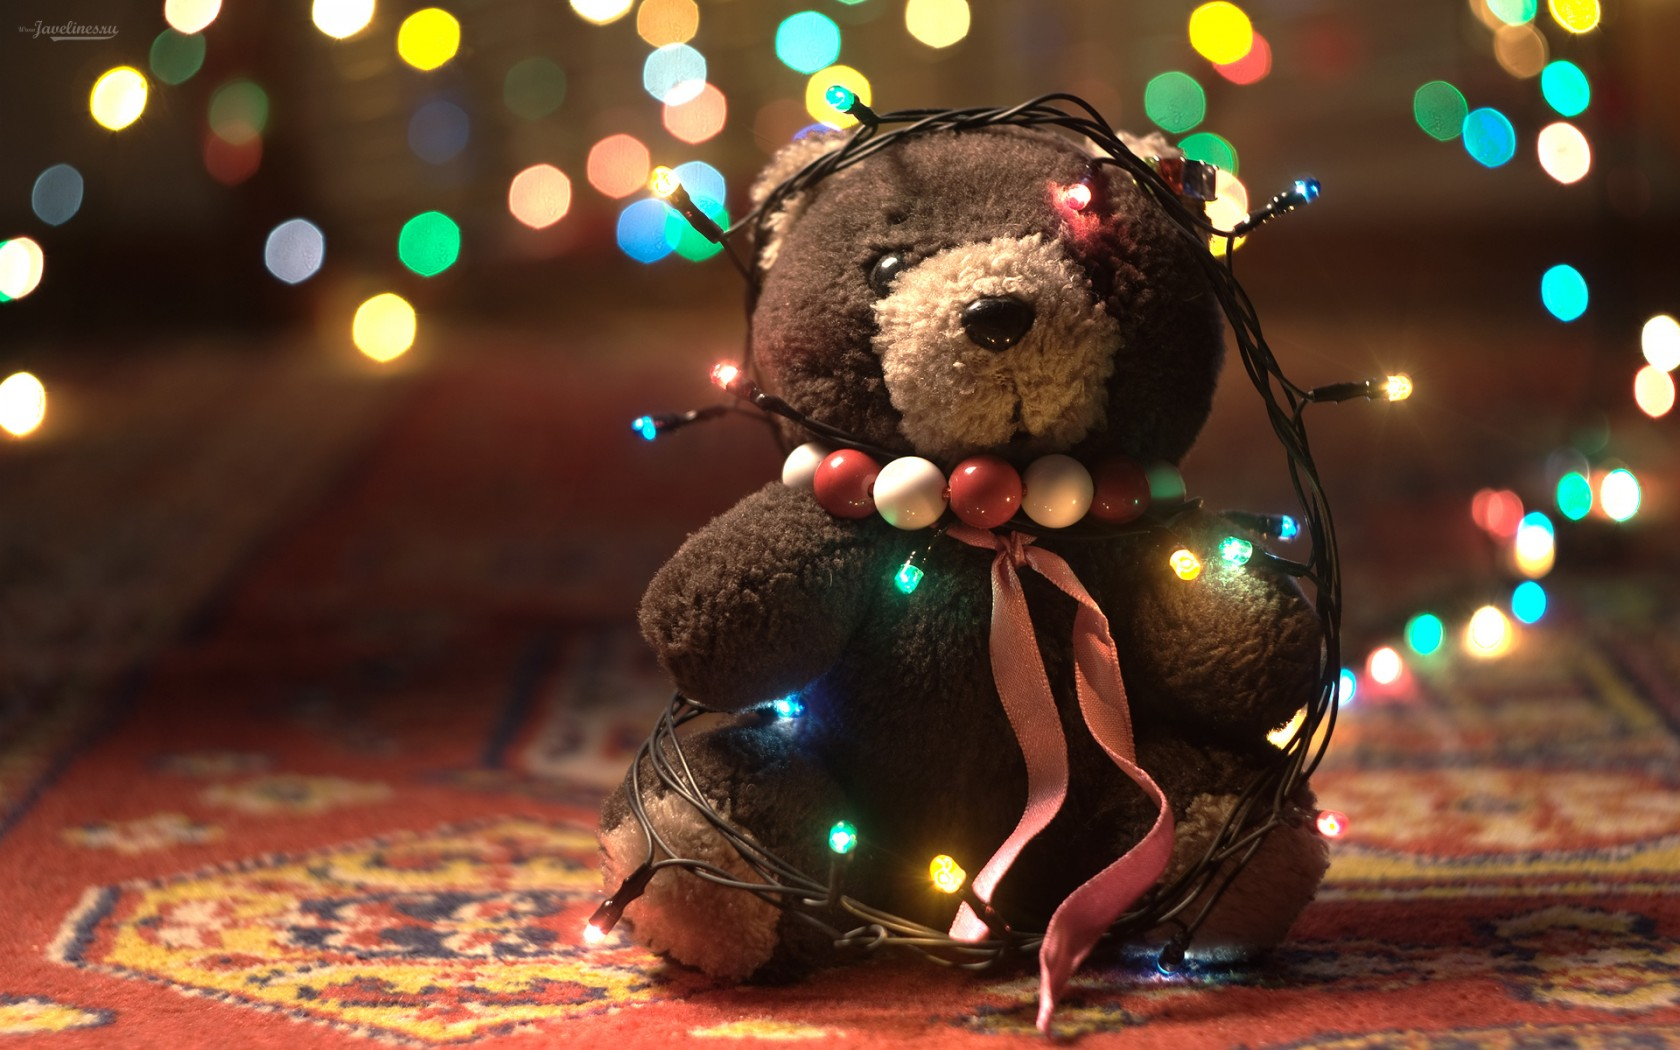 Anime Alone Wallpaper Adorable Teddy Bear Wallpapers Hd Wallpapers Id 11497